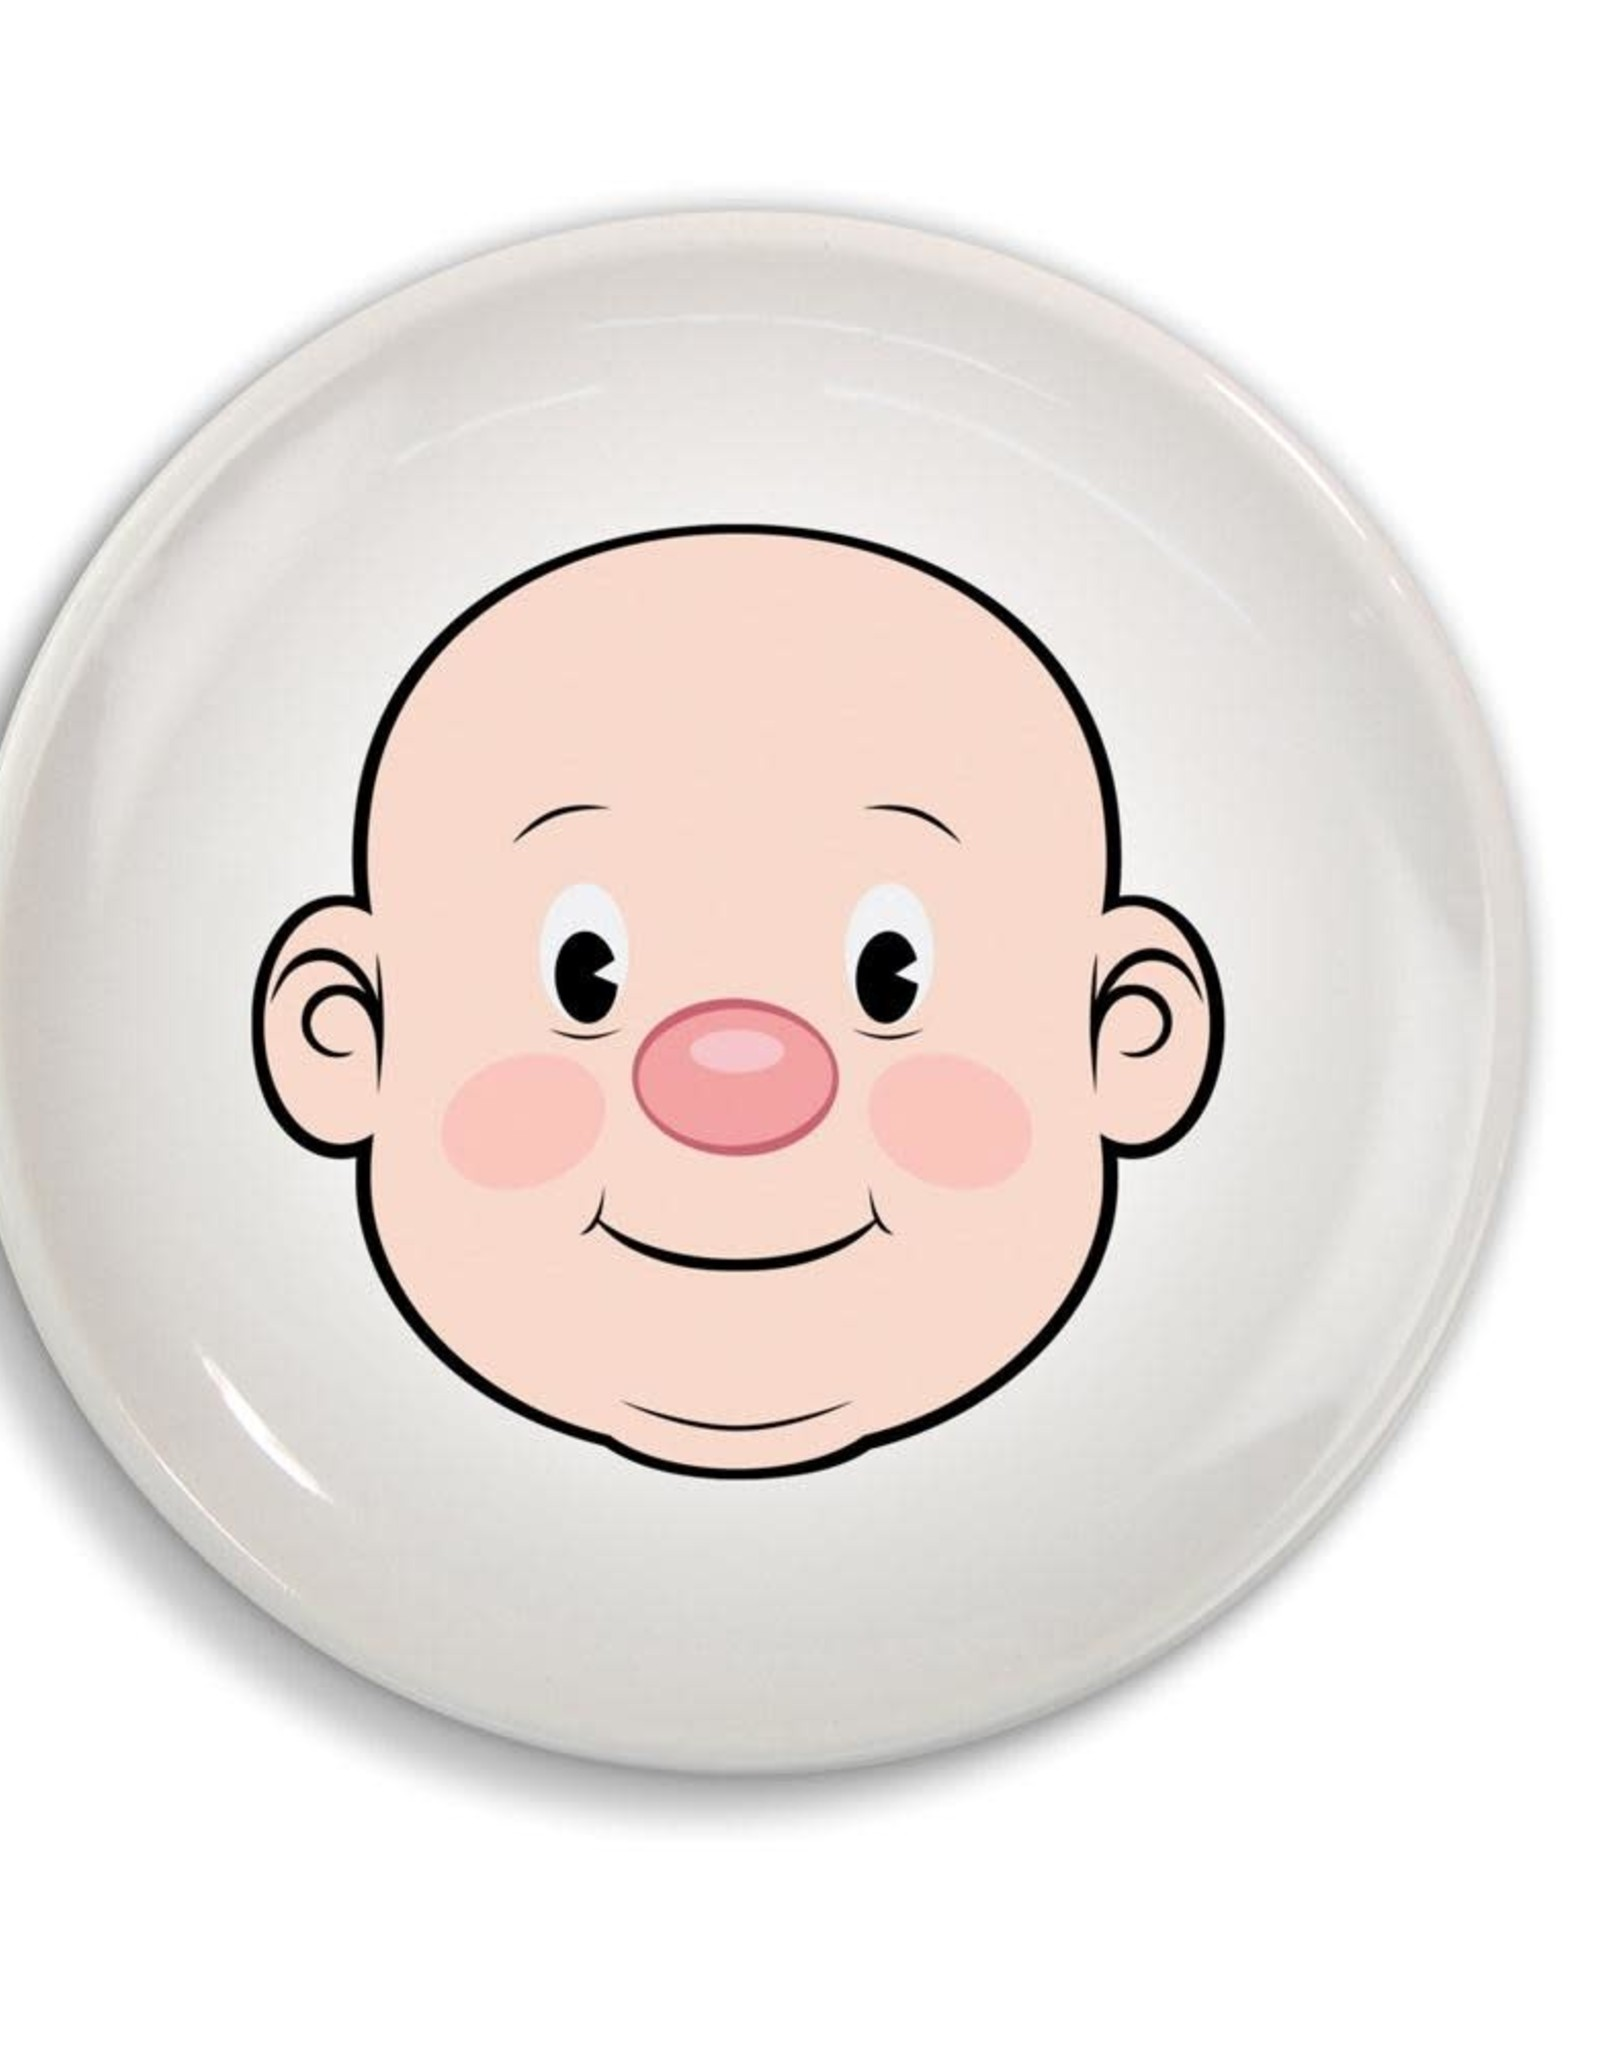 Fred & Friends Dinner Plate - Food Face